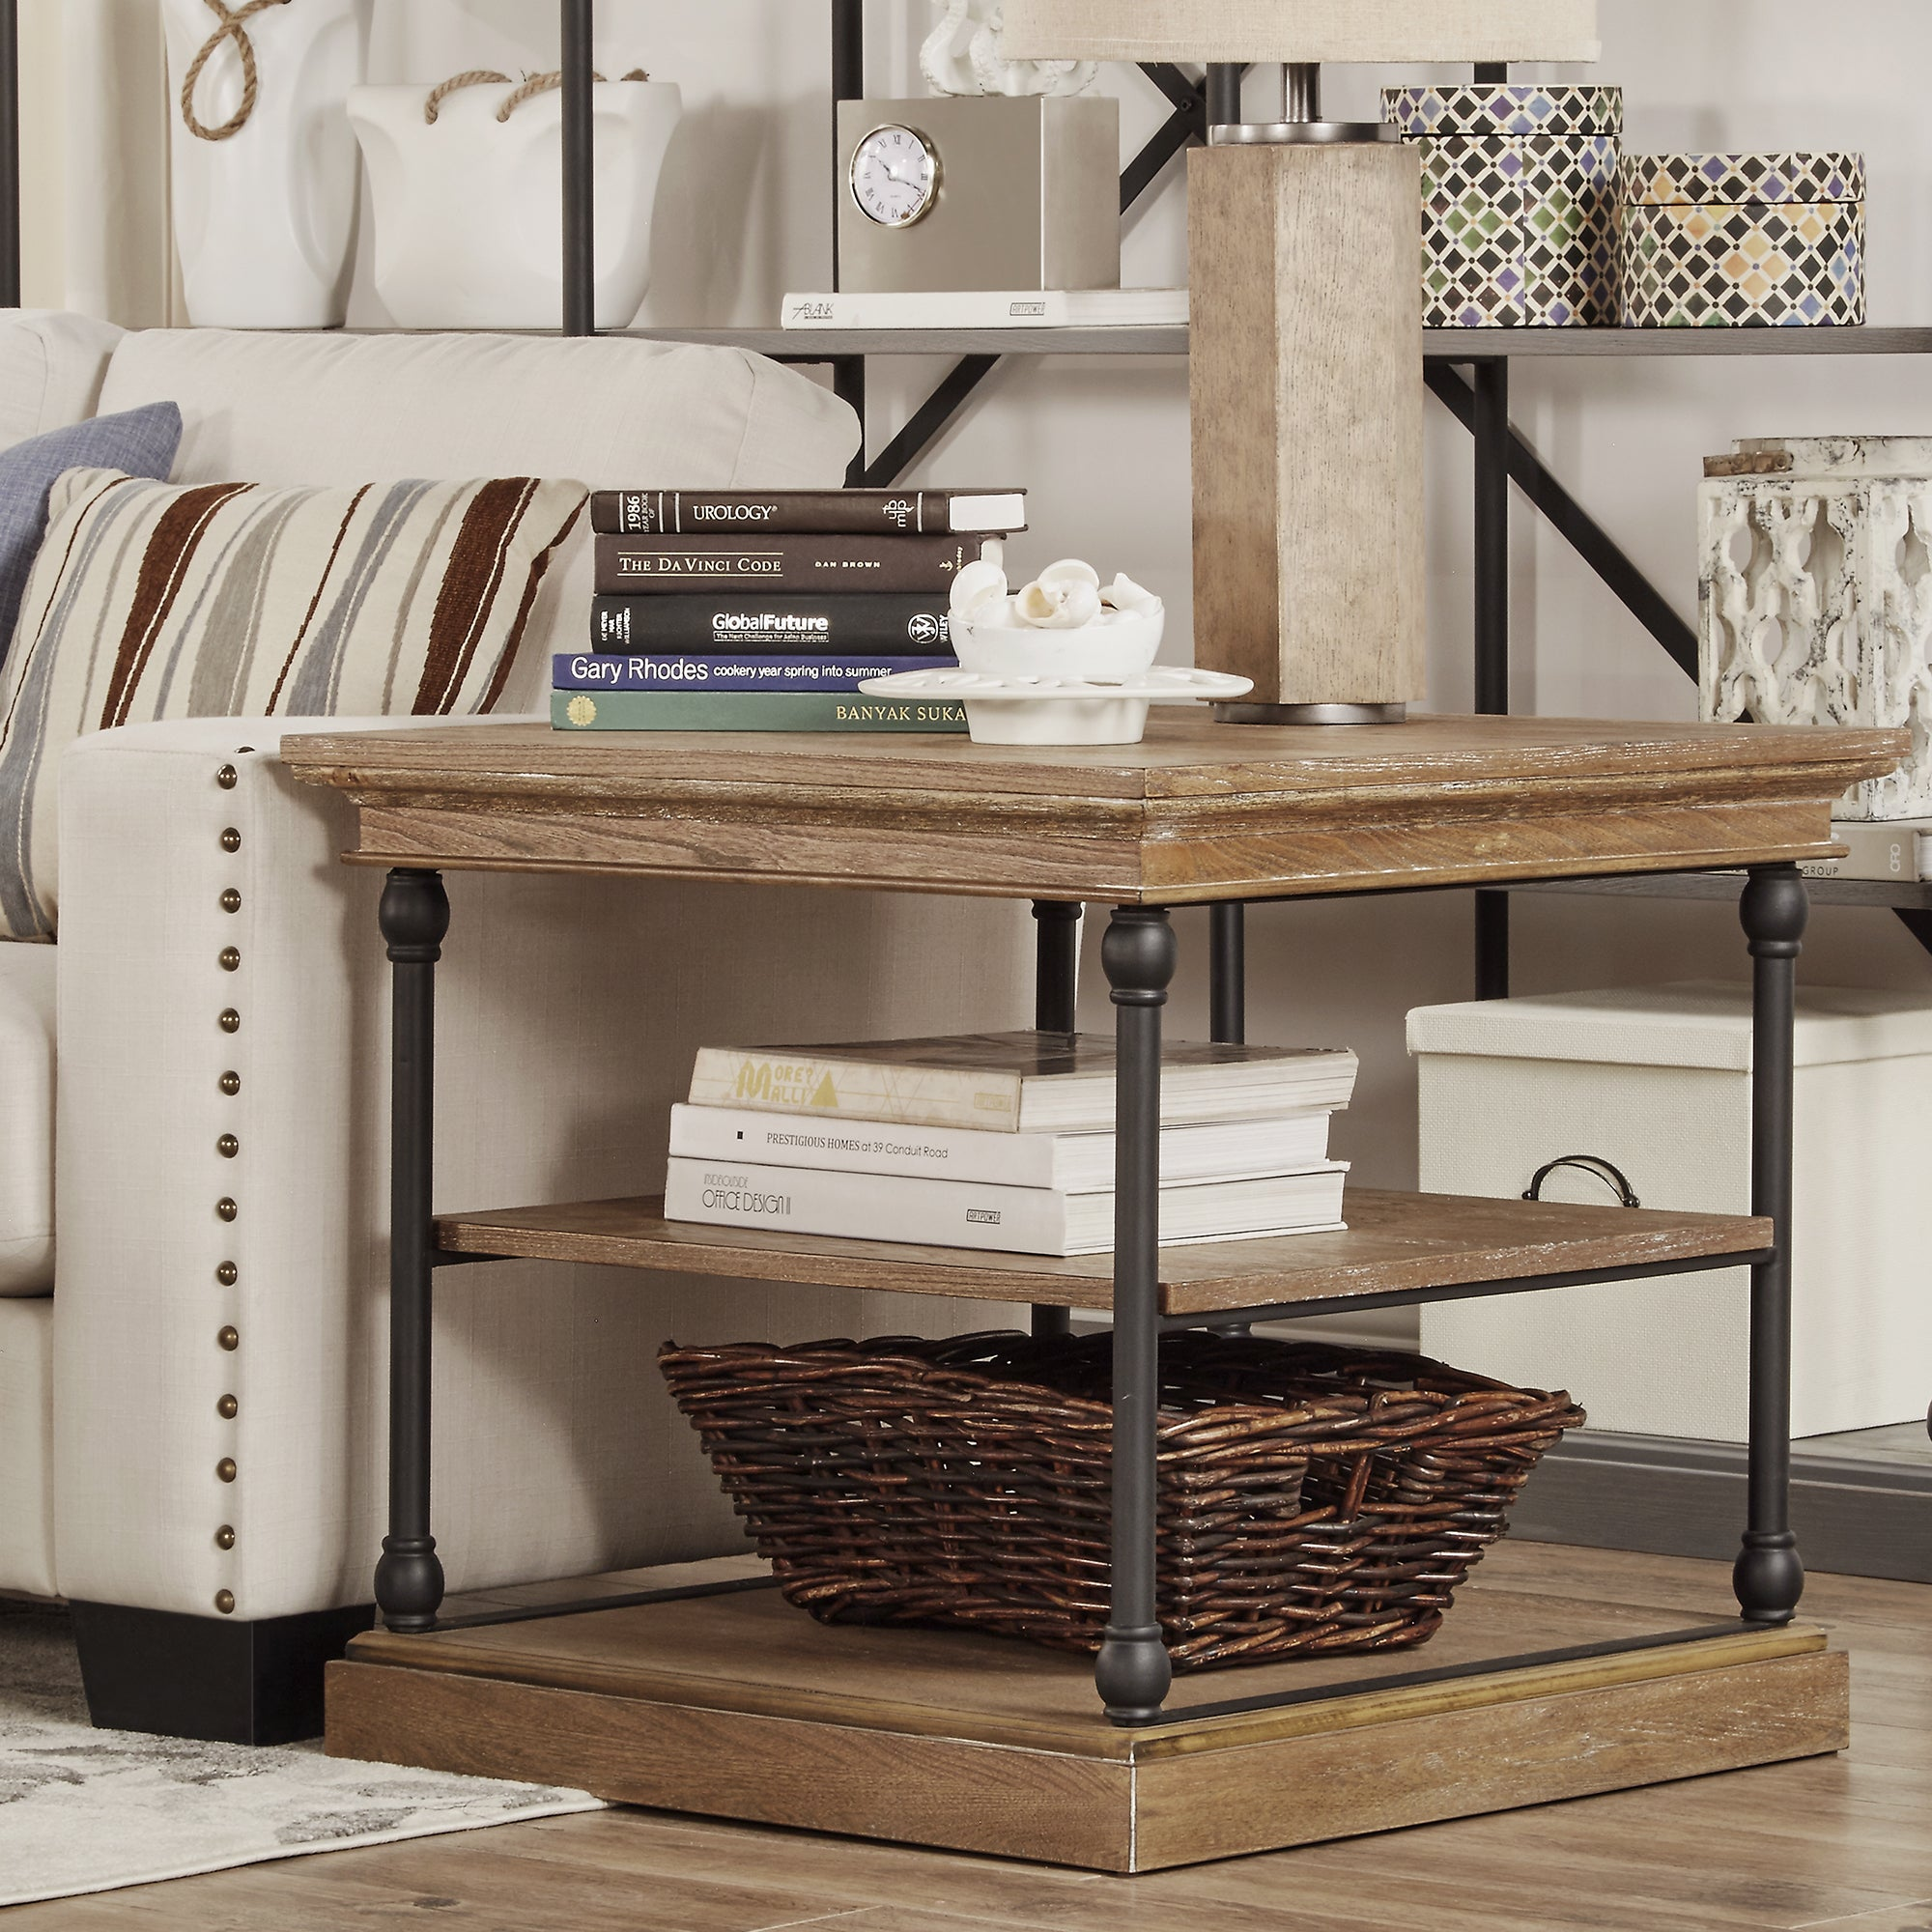 Barnstone-Cornice-Accent-Storage-Side-Table-by-iNSPIRE-